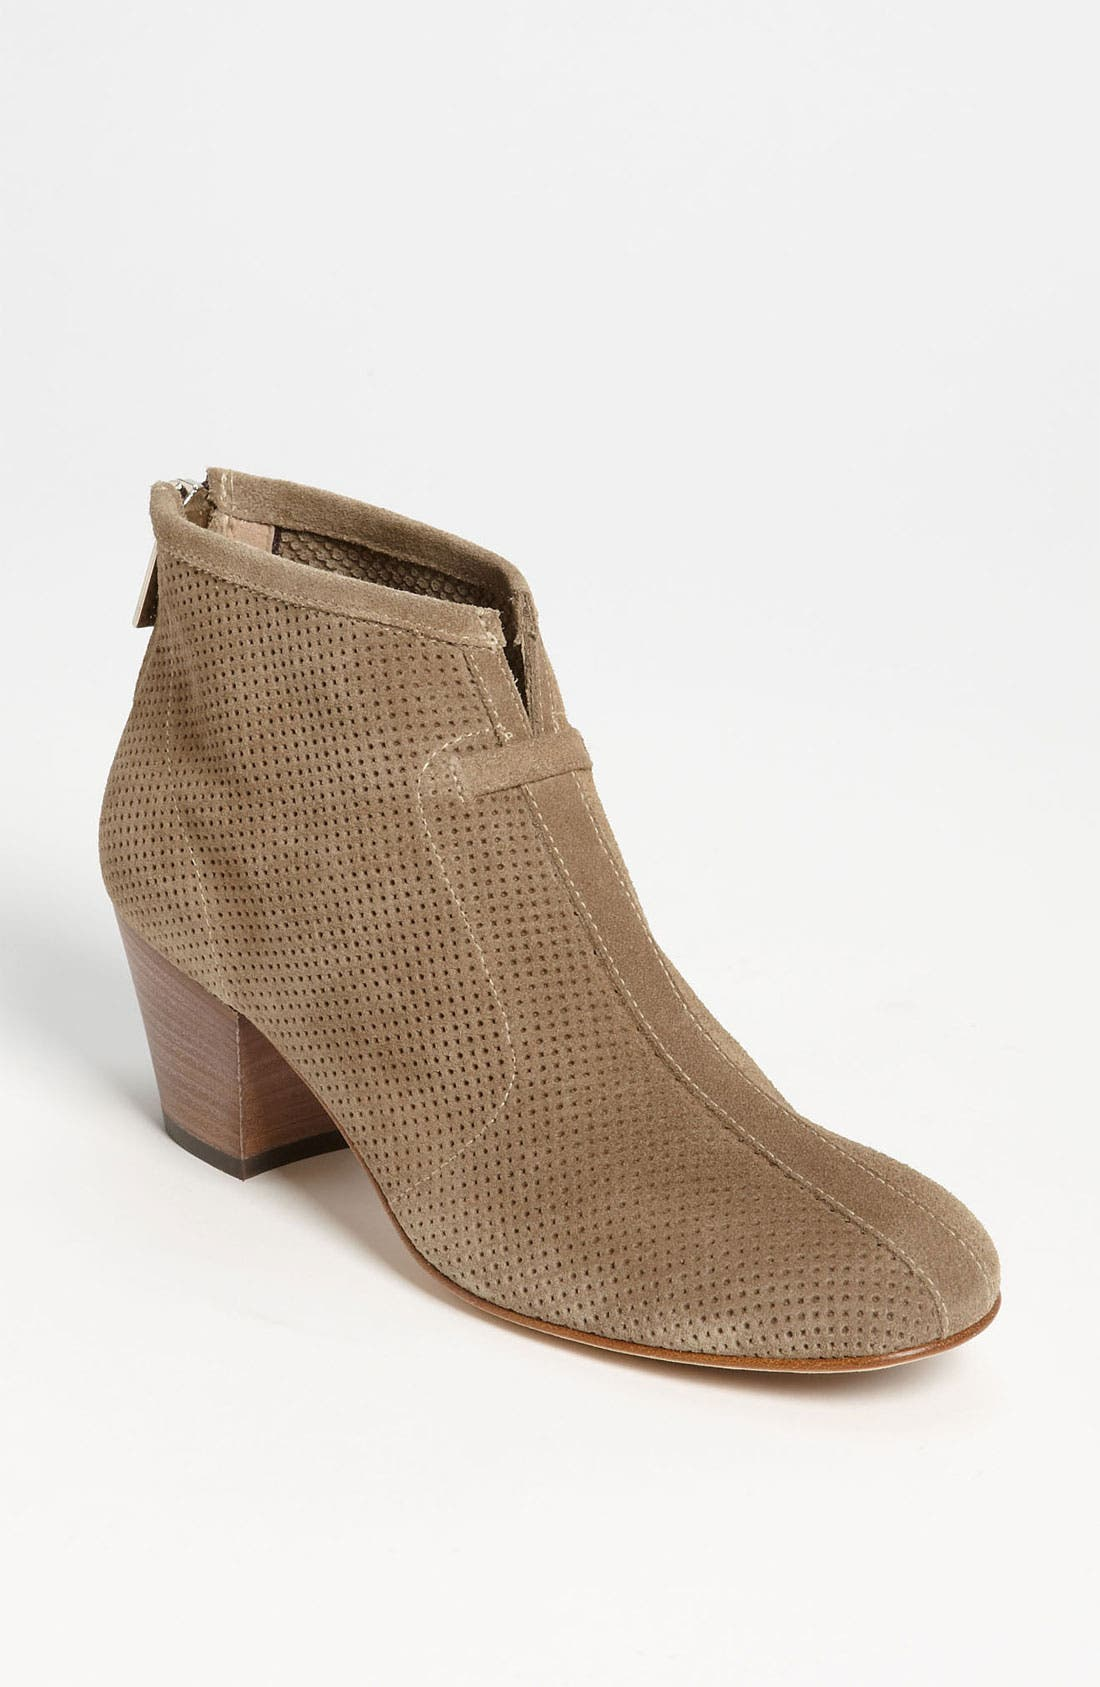 Alternate Image 1 Selected - Aquatalia by Marvin K. 'Xcellent' Perforated Suede Bootie (Women)